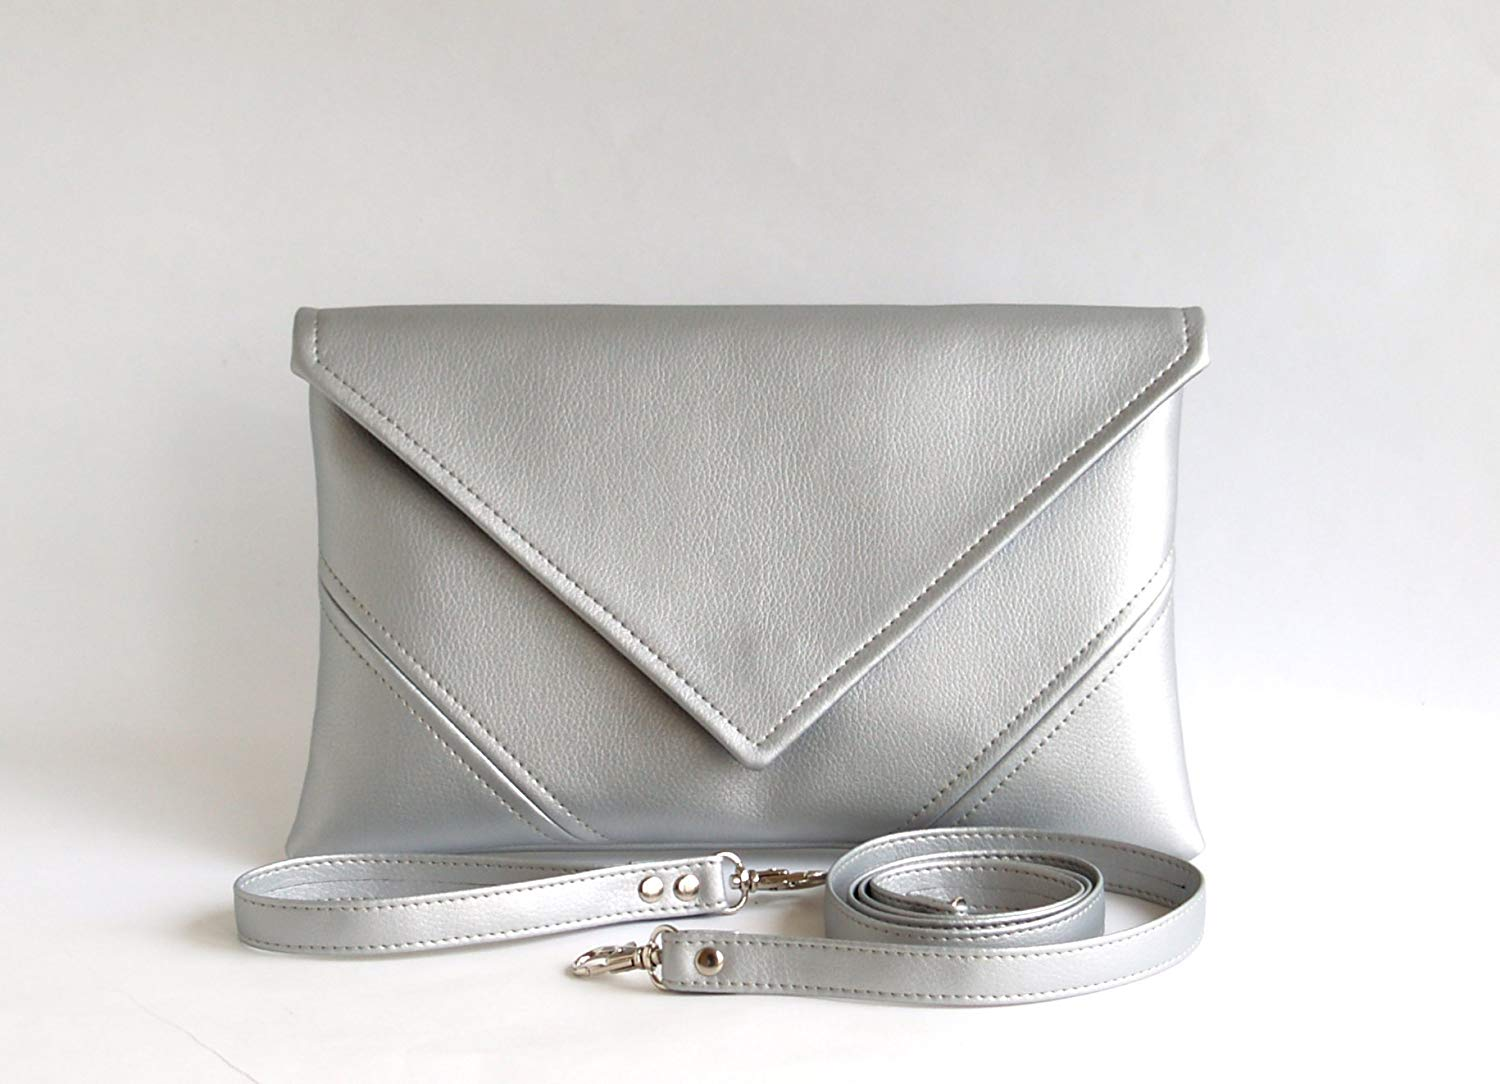 Silver Clutch Bag Handmade Bridesmaid Clutch Purse Womens Gift For Her Vegan Leather Clutch Handbag Evening Clutch Wallet Silver Purse Vegan Handbag